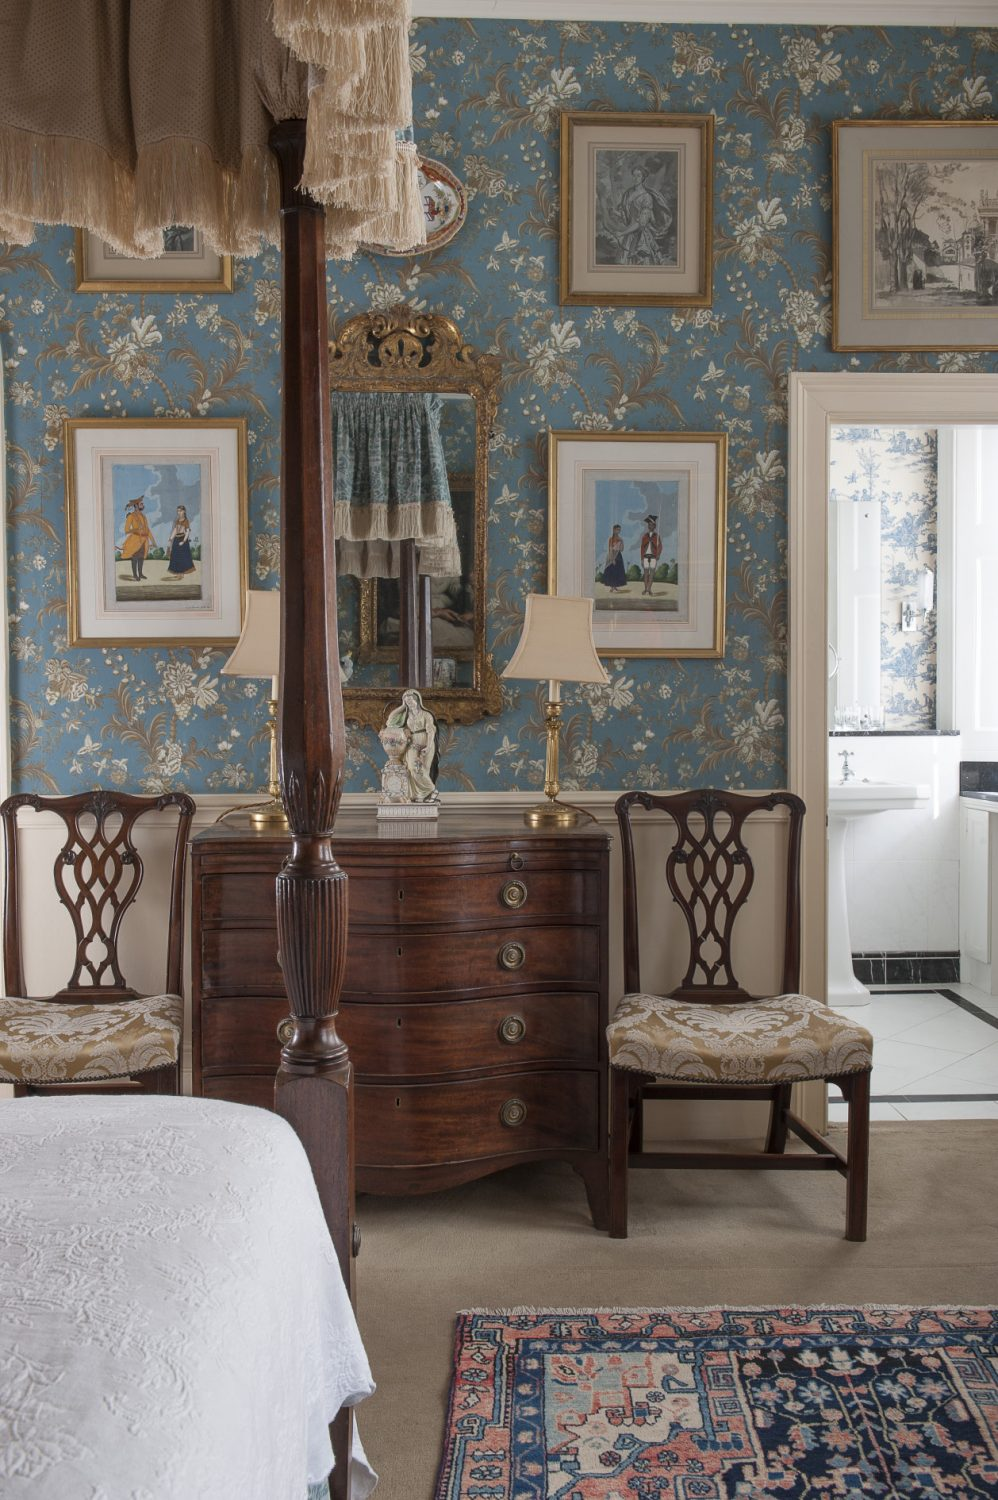 There are well-chosen pieces of walnut and mahogany furniture and a number of gilt mirrors and pictures including a modern oil